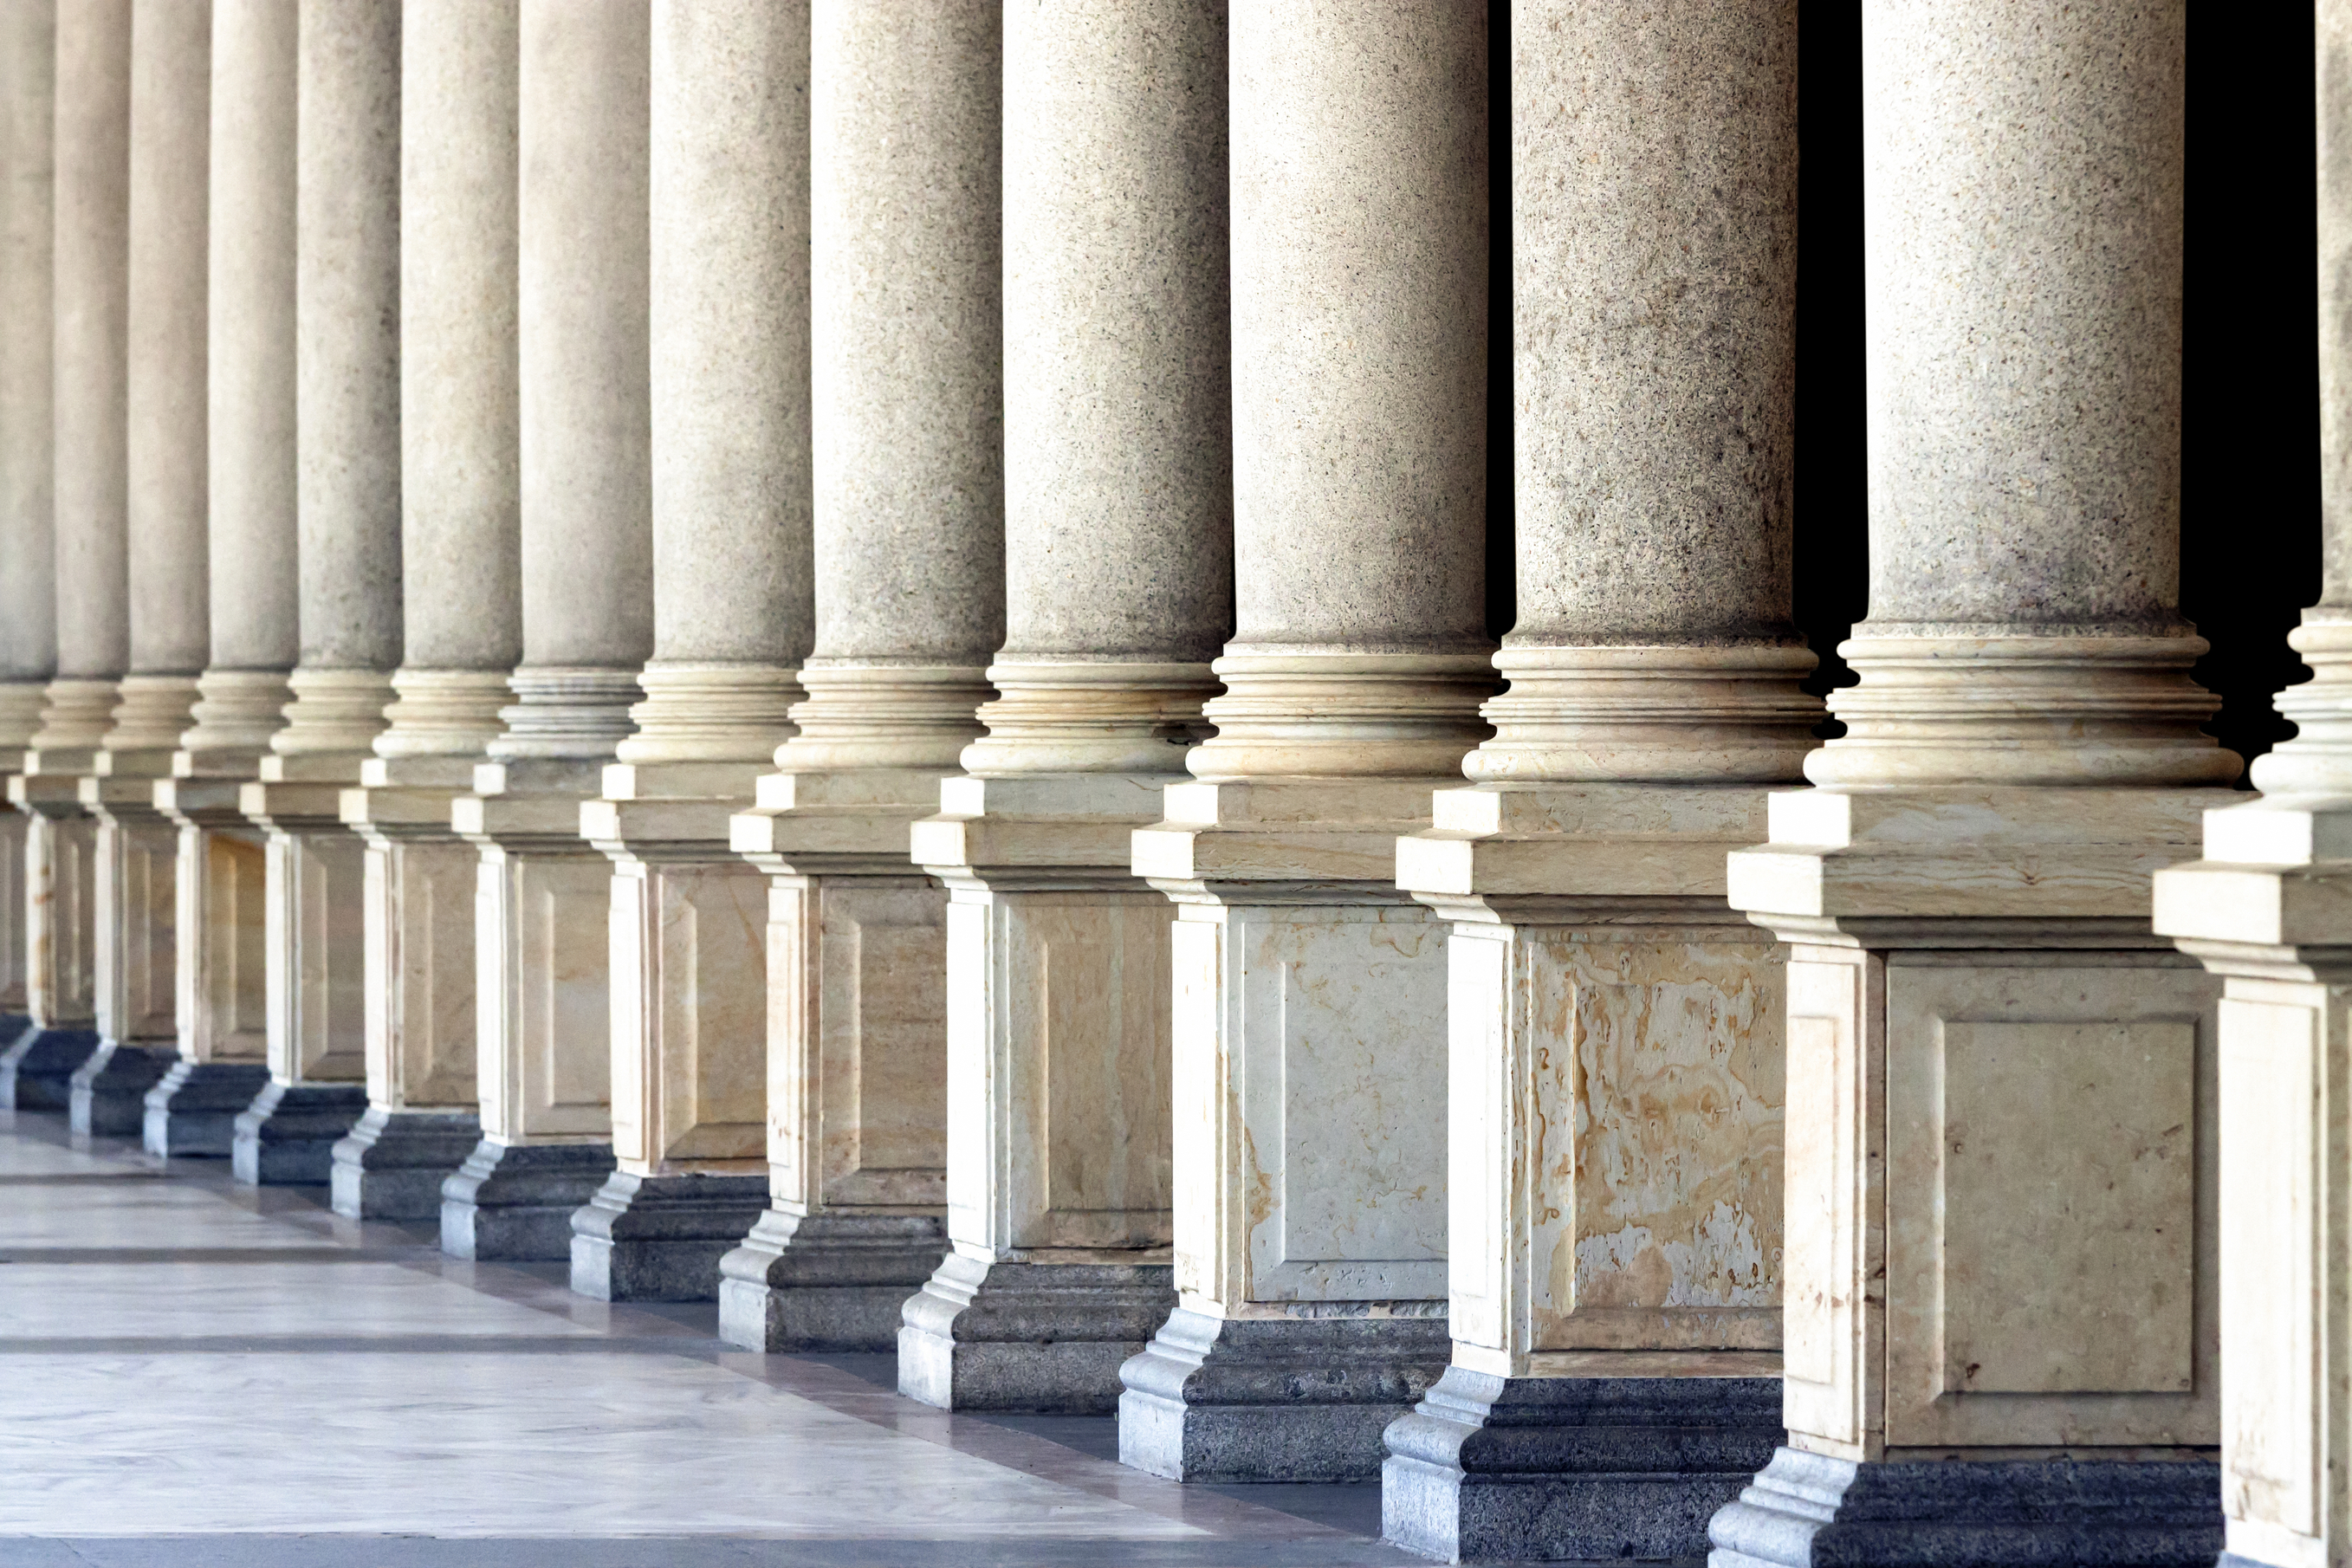 Row of classical columns, full frame horizontal composition, copy space